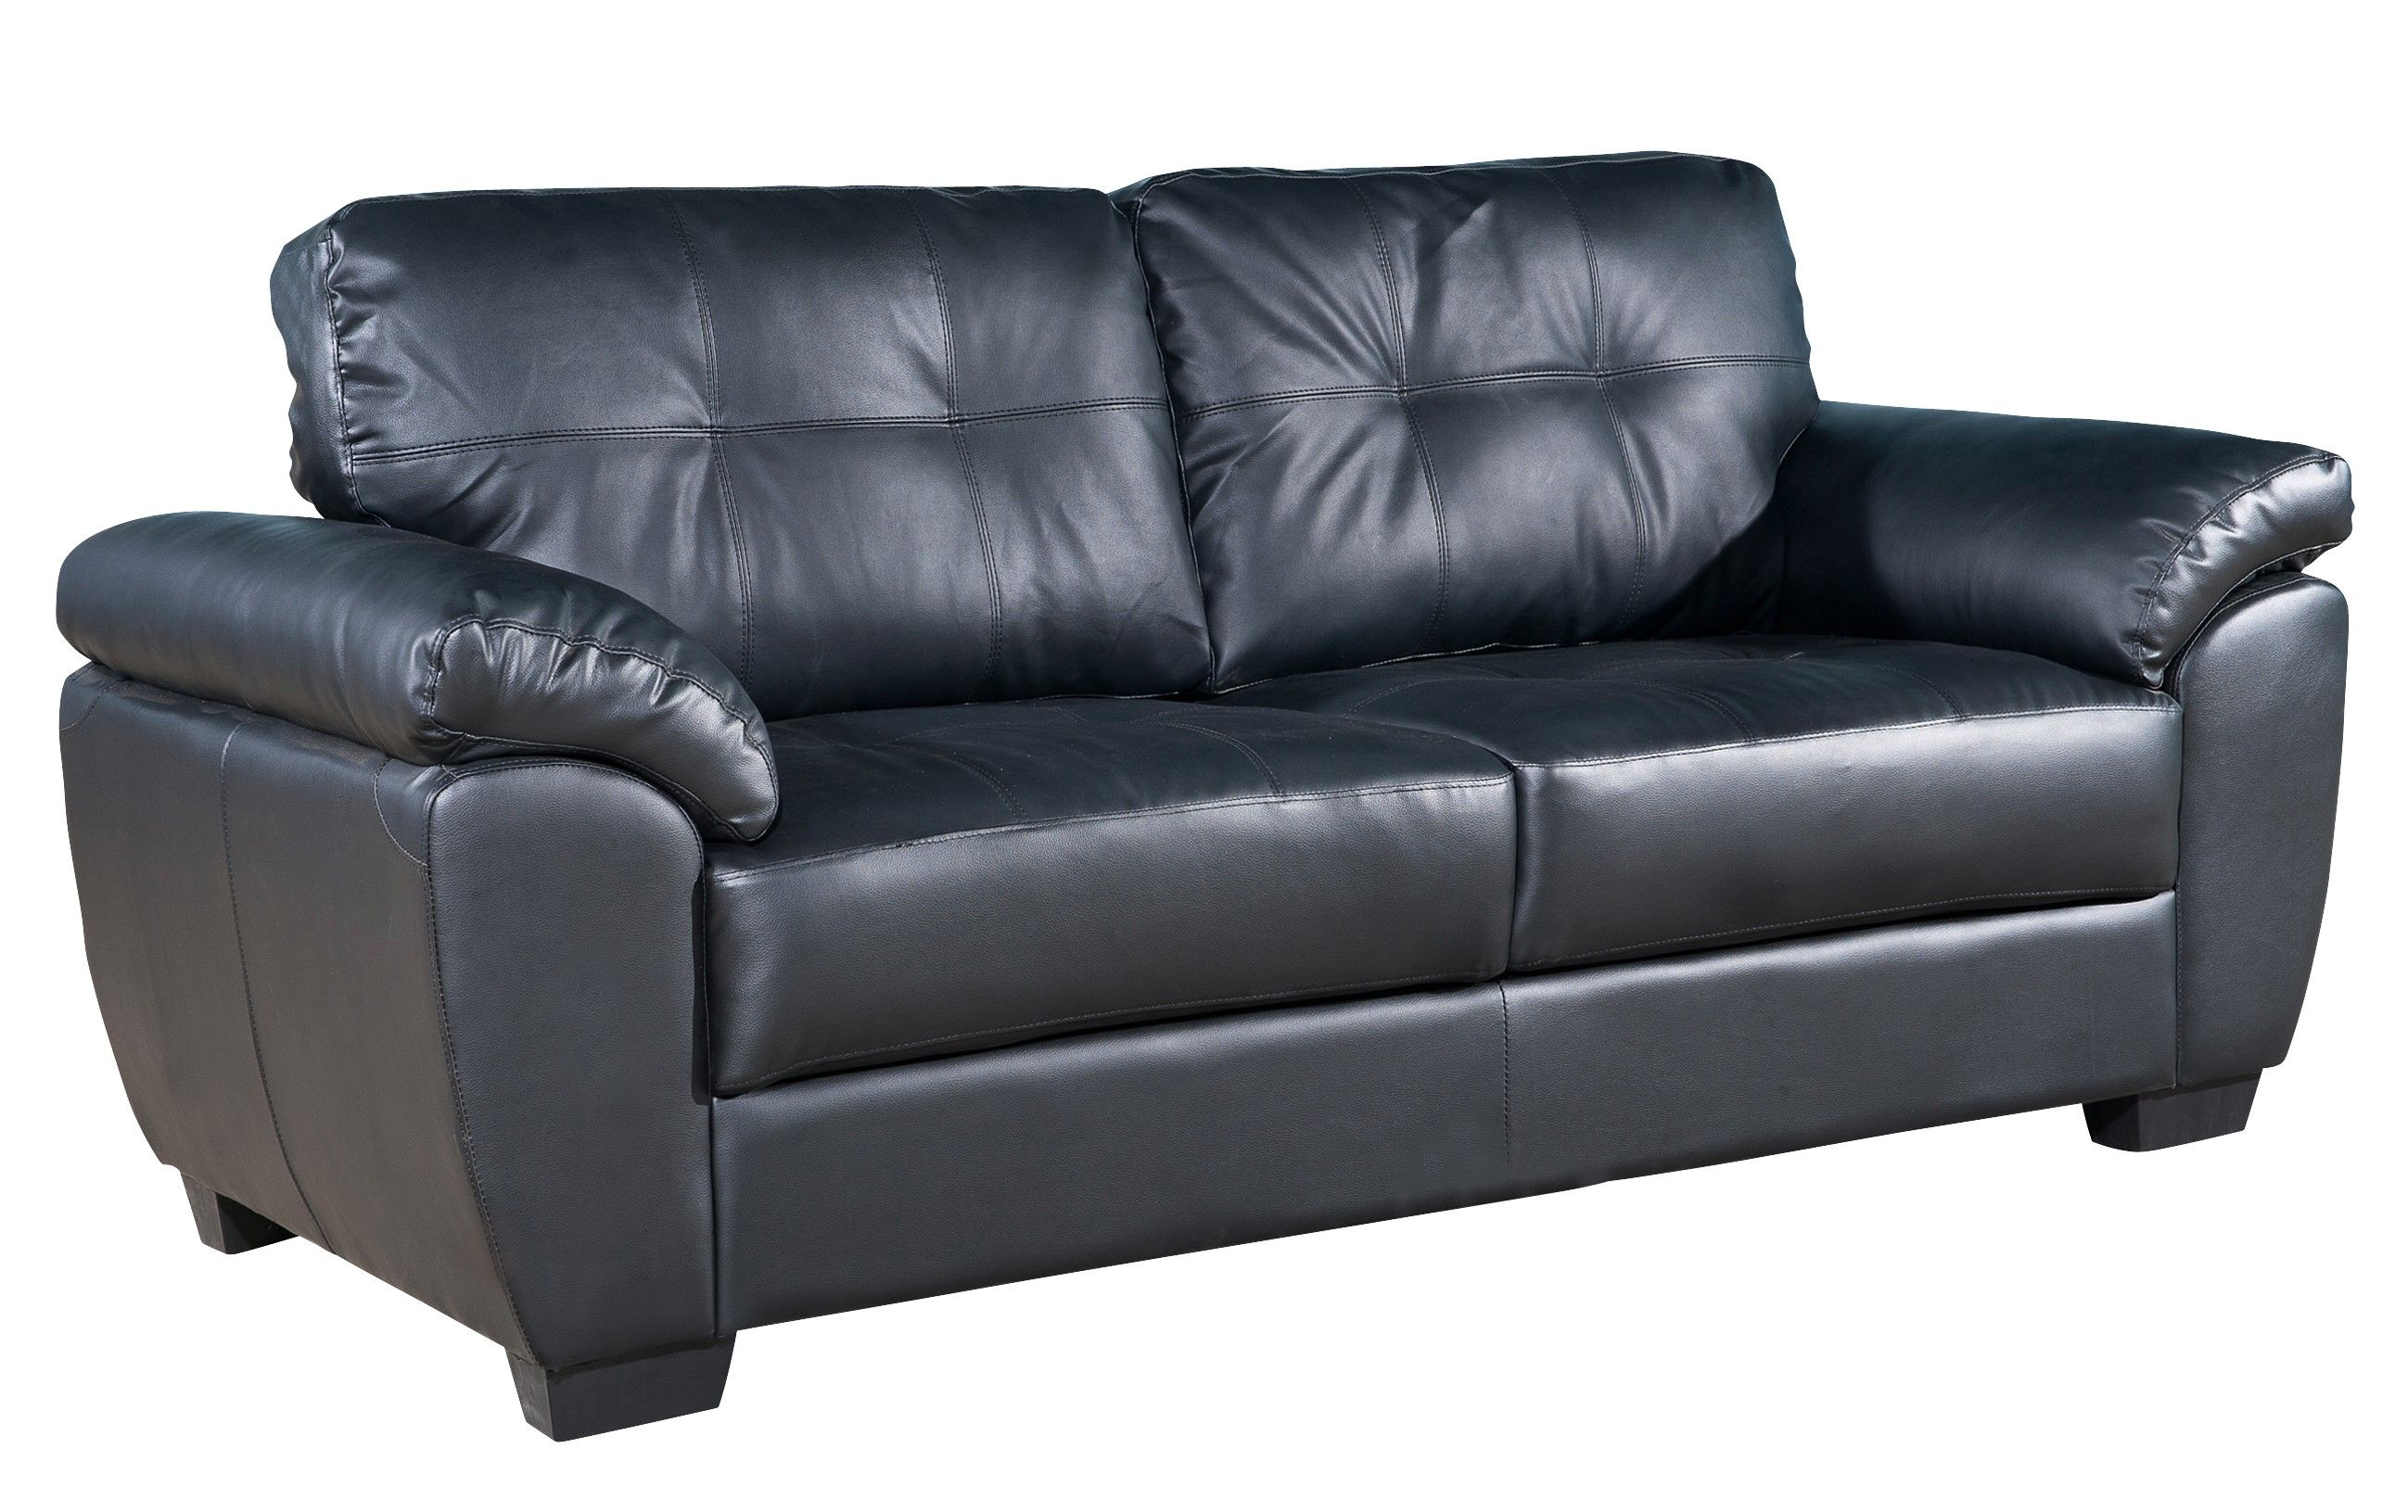 Sofa Brisbane Brisbane Premium Bonded Leather 3 Seater Sofa Black 329 Sofa